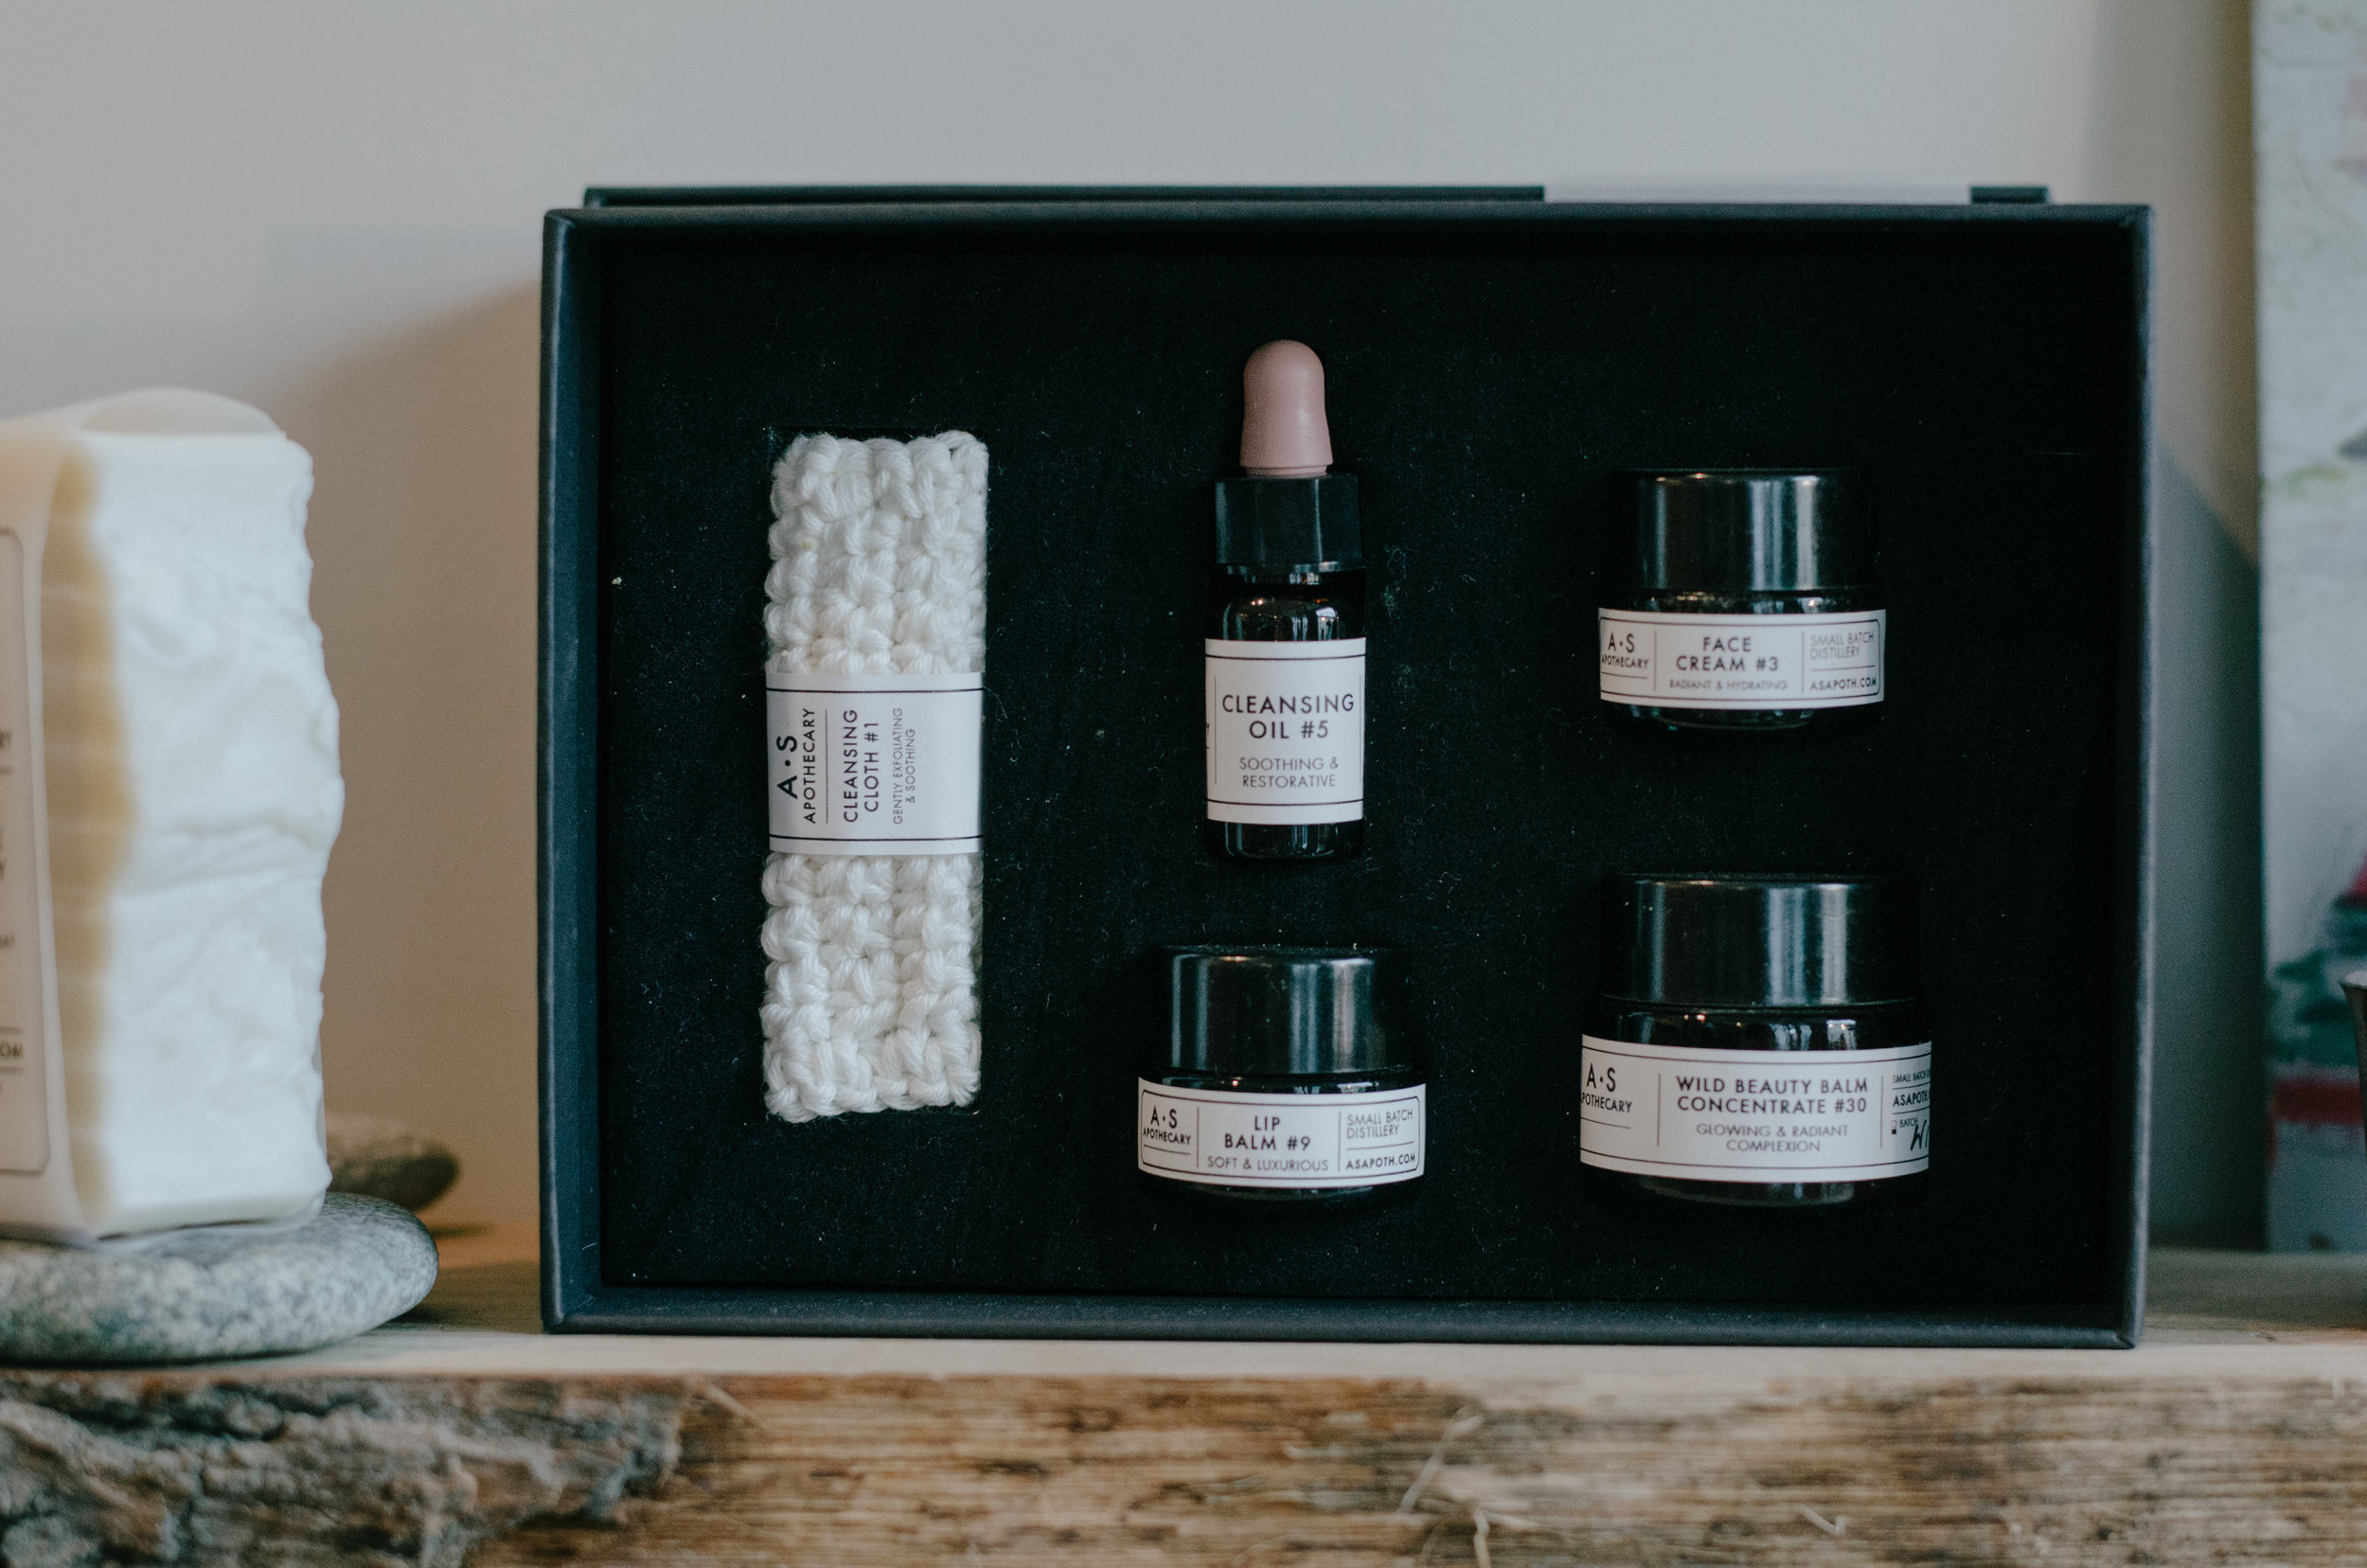 Ellie Gill - Natural Beauty Masterclass A.S.Apothecary, Lewes - Aiste Saulyte Photography-56.jpg